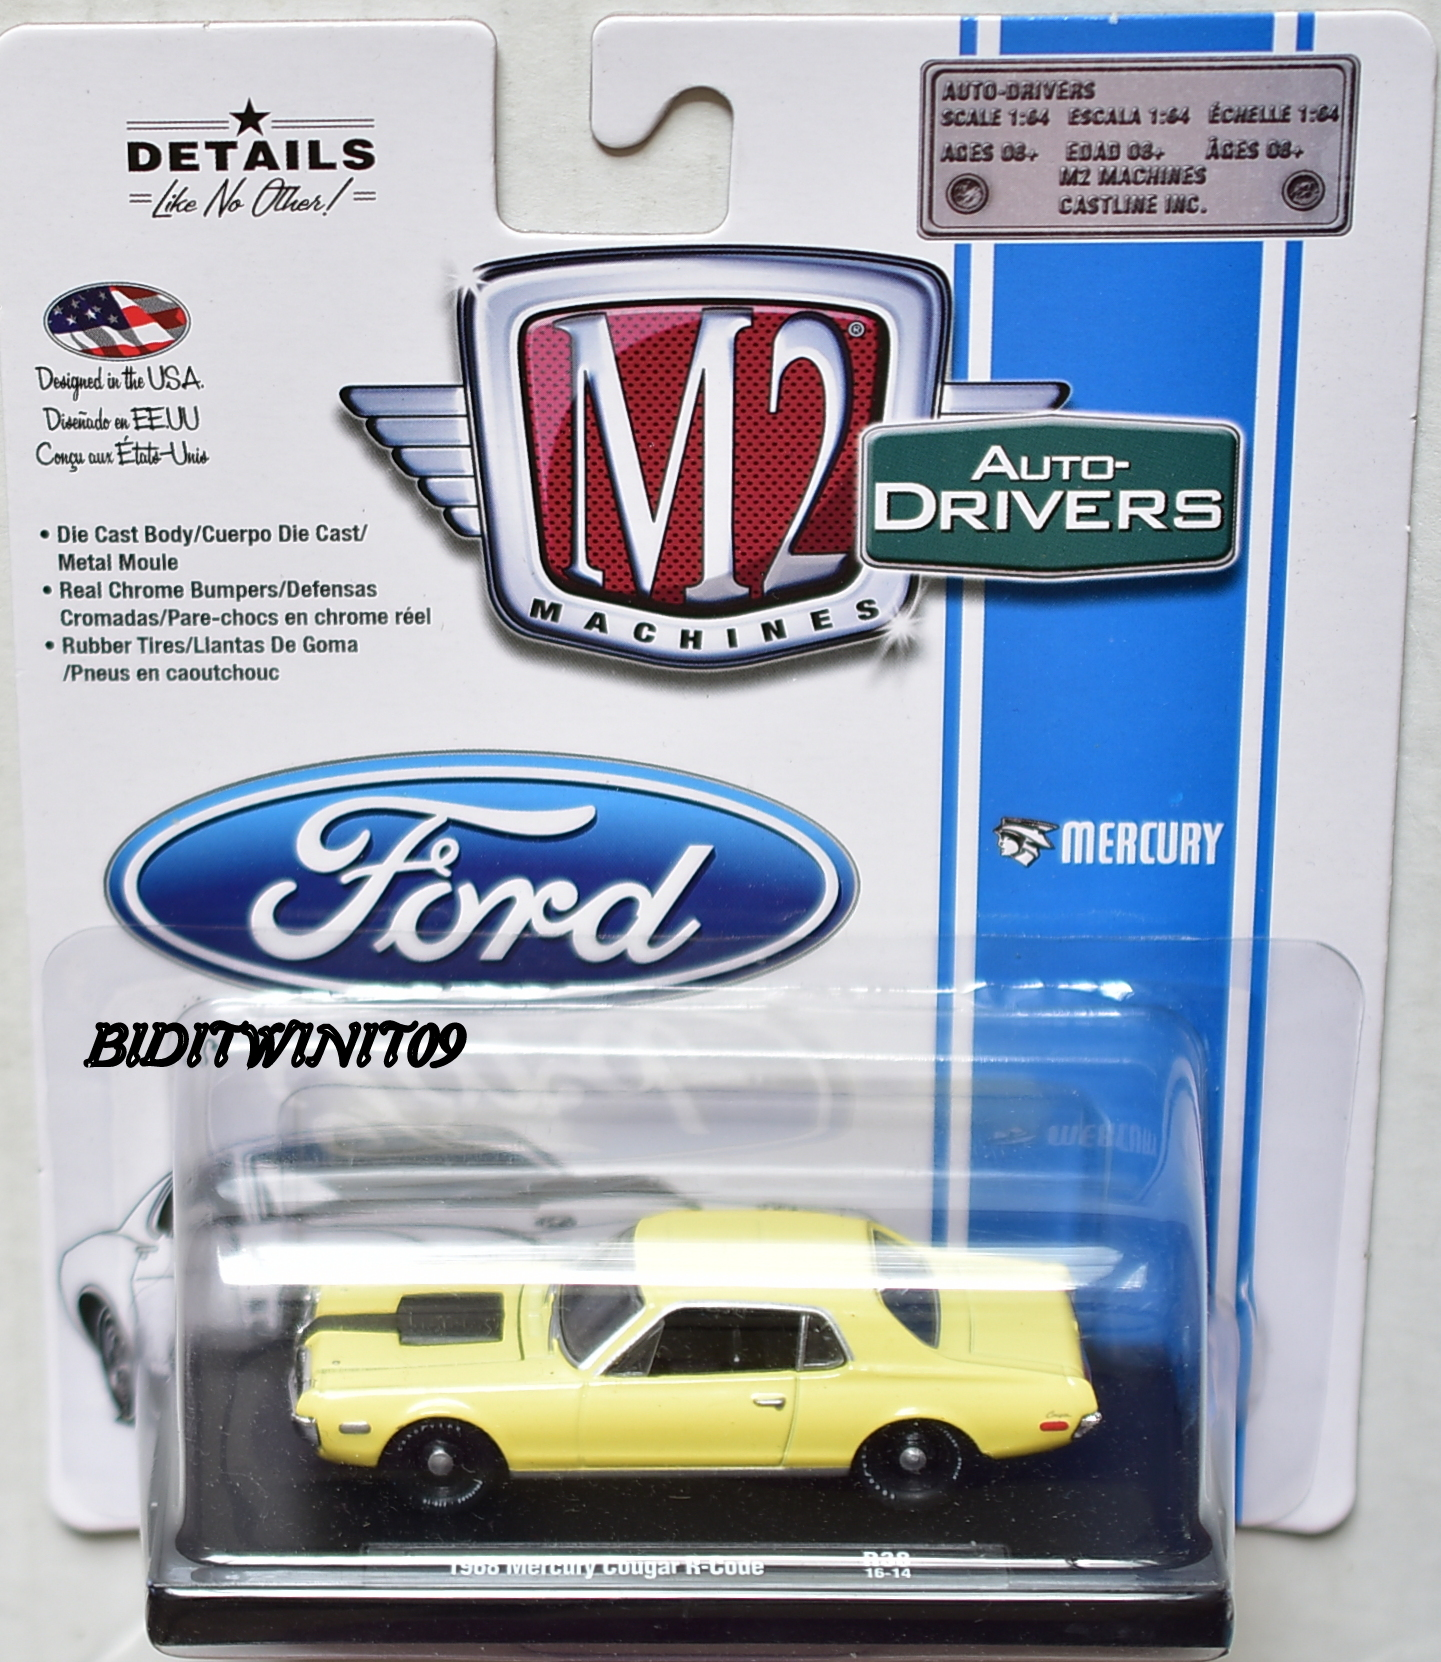 M2 MACHINES AUTO-DRIVERS 1968 MERCURY COUGAR R-CODE R38 E+